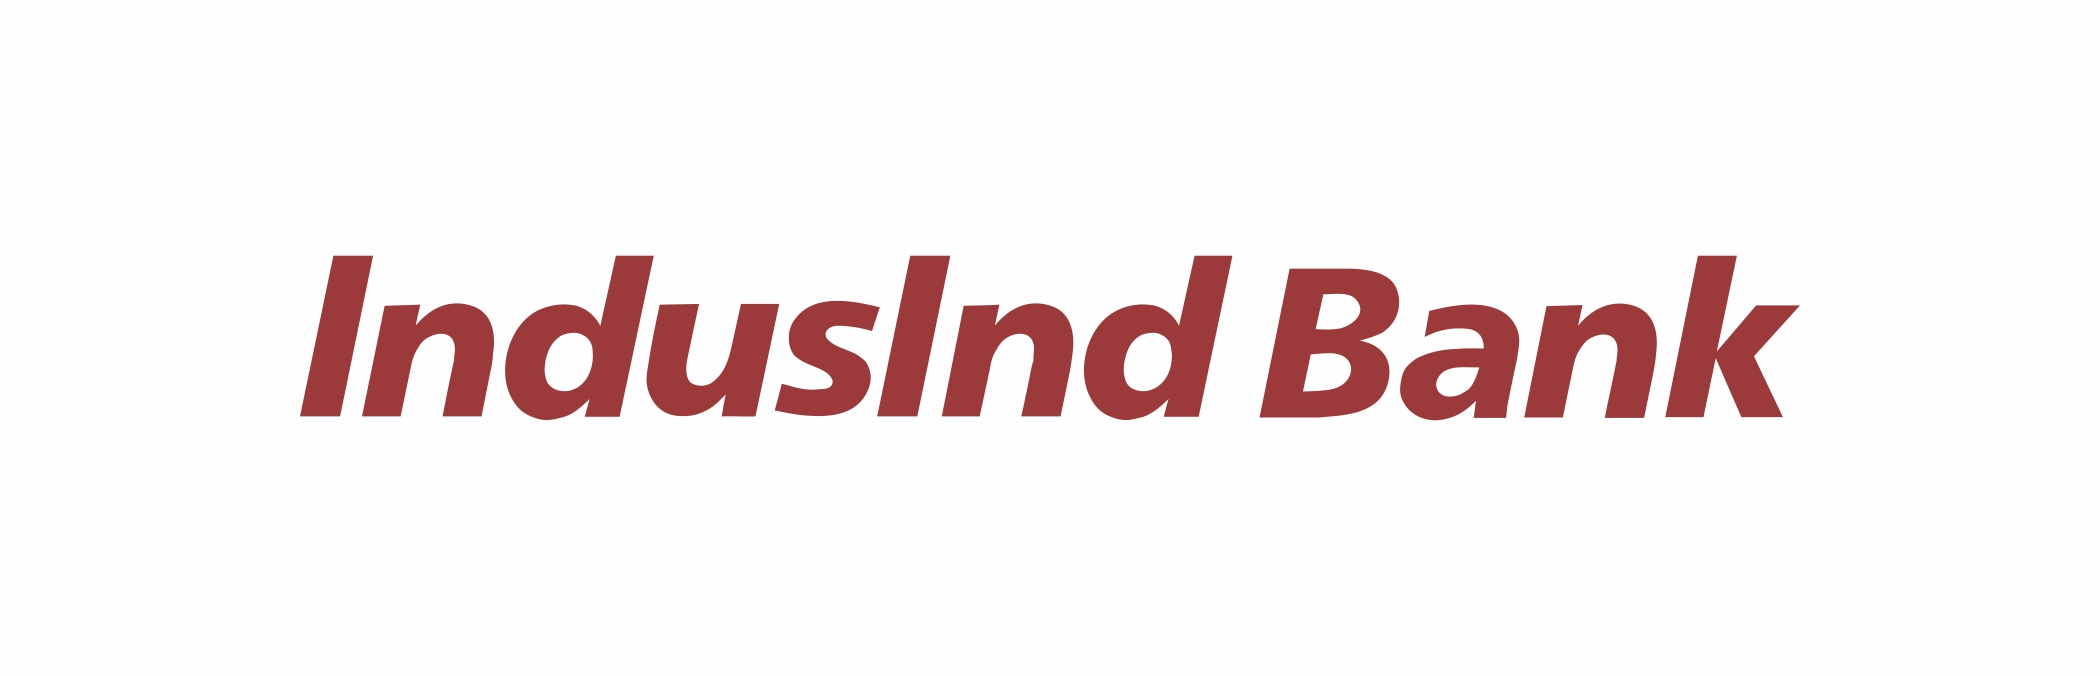 IndusInd Bank - Sanjay Place Branch, Agra